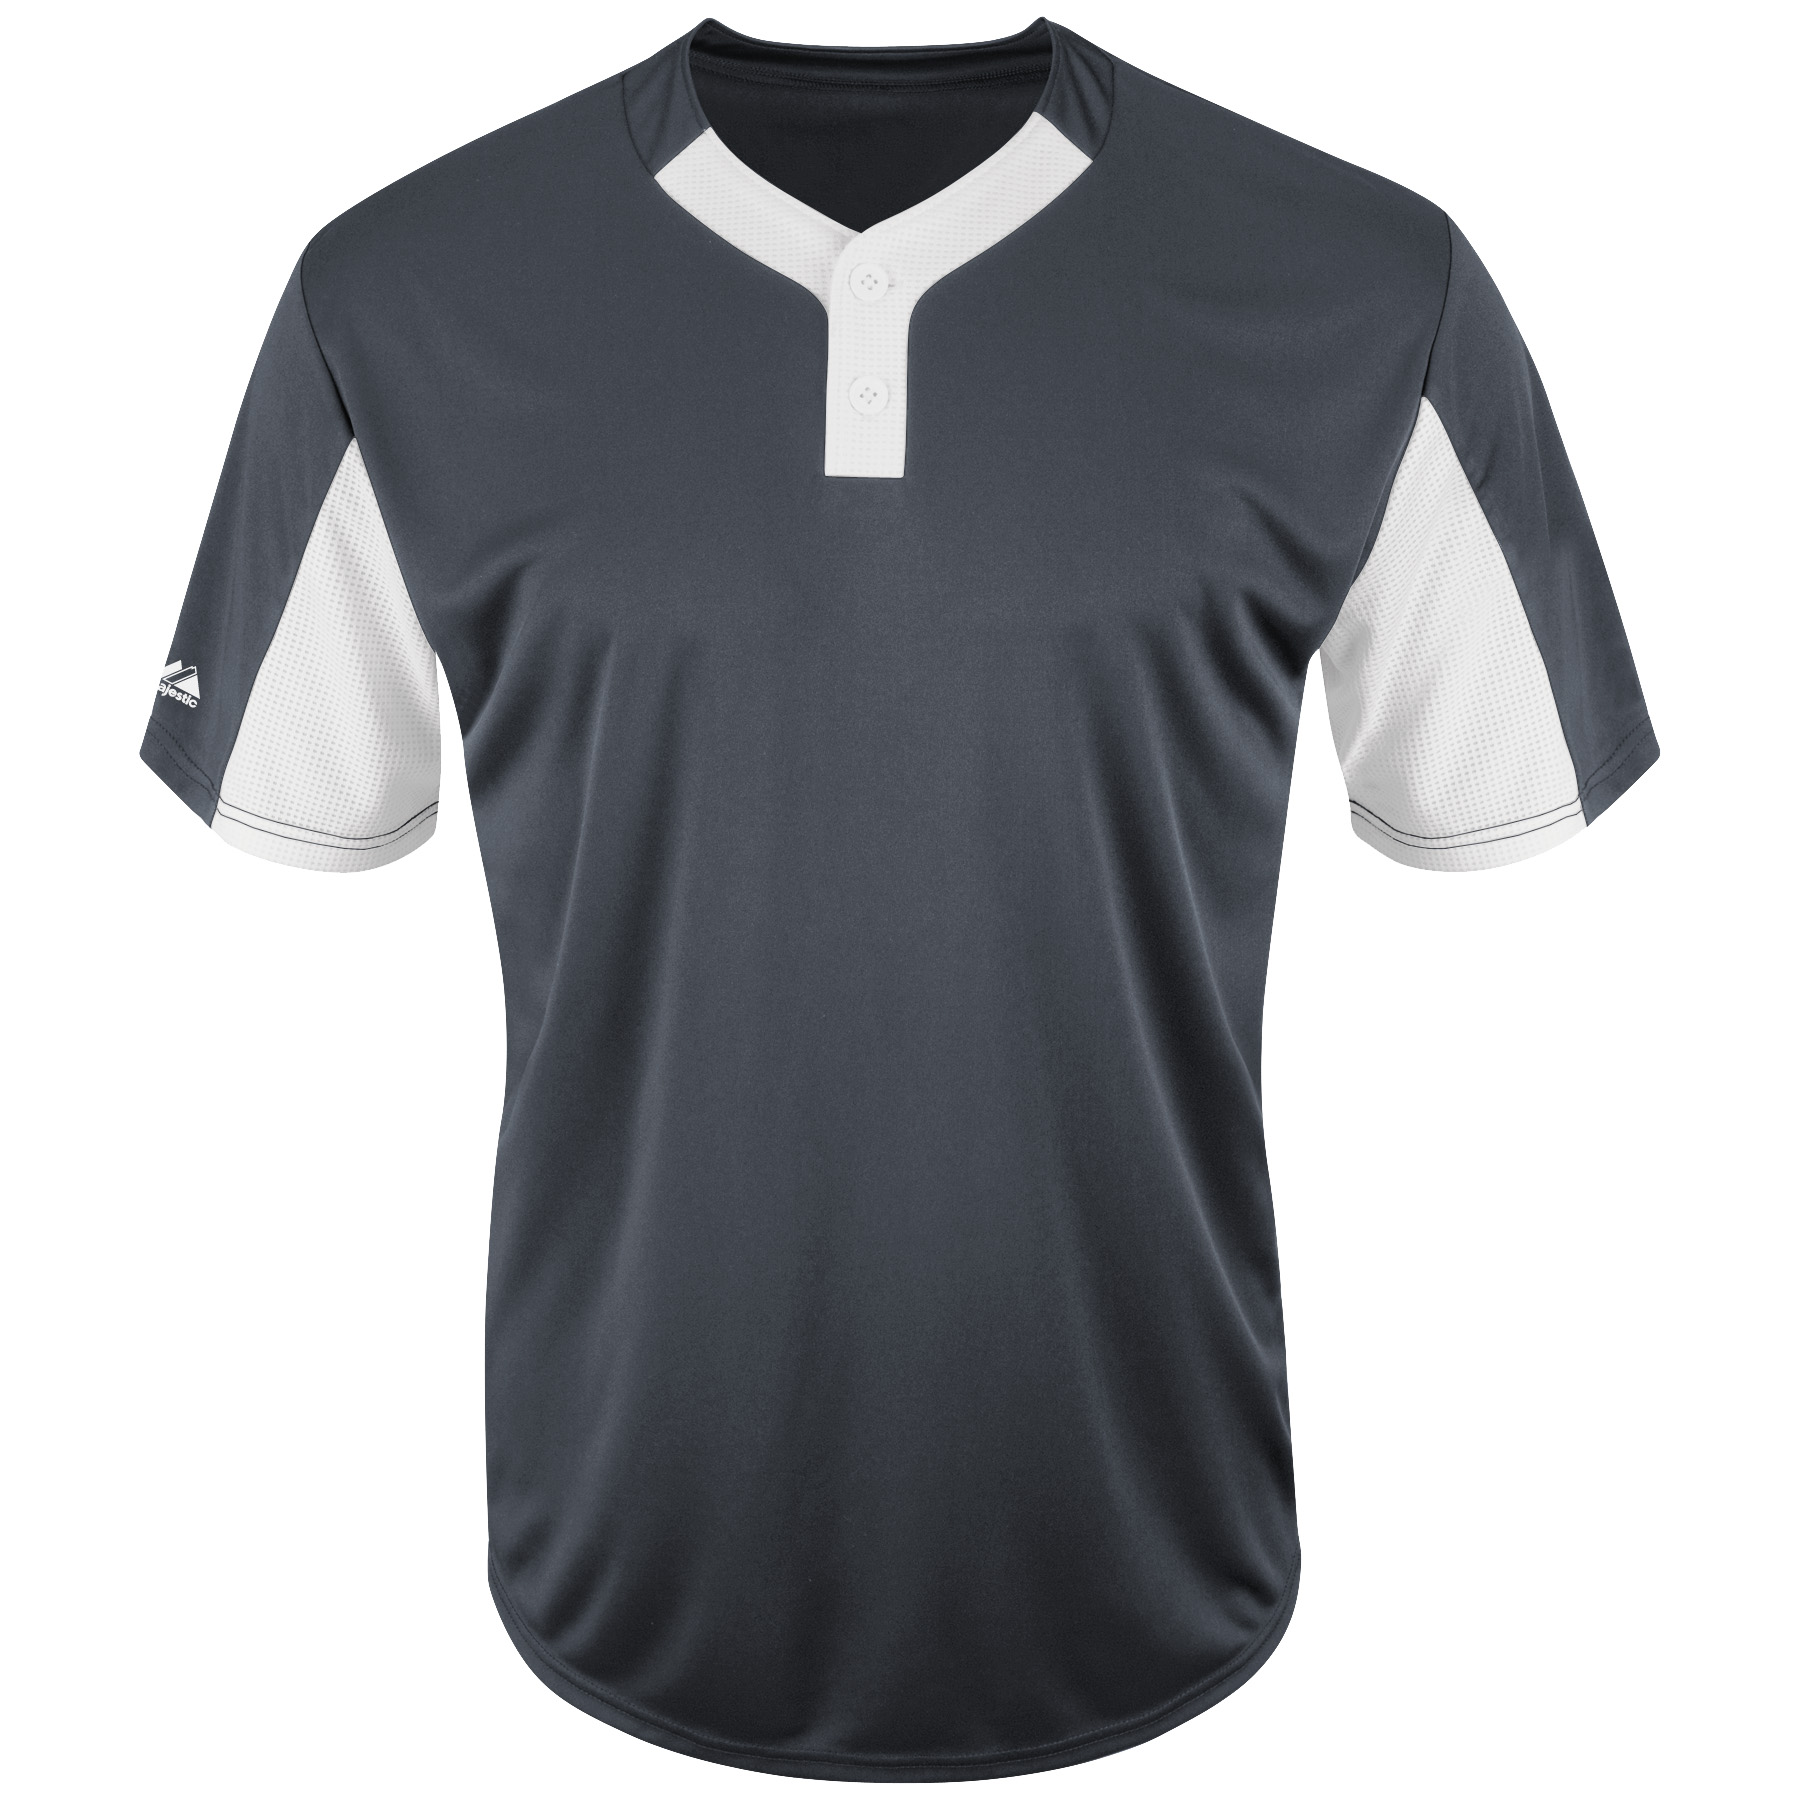 Majestic Youth Premier Eagle Cool Base Two-Button Colorblocked Jersey - Charcoal